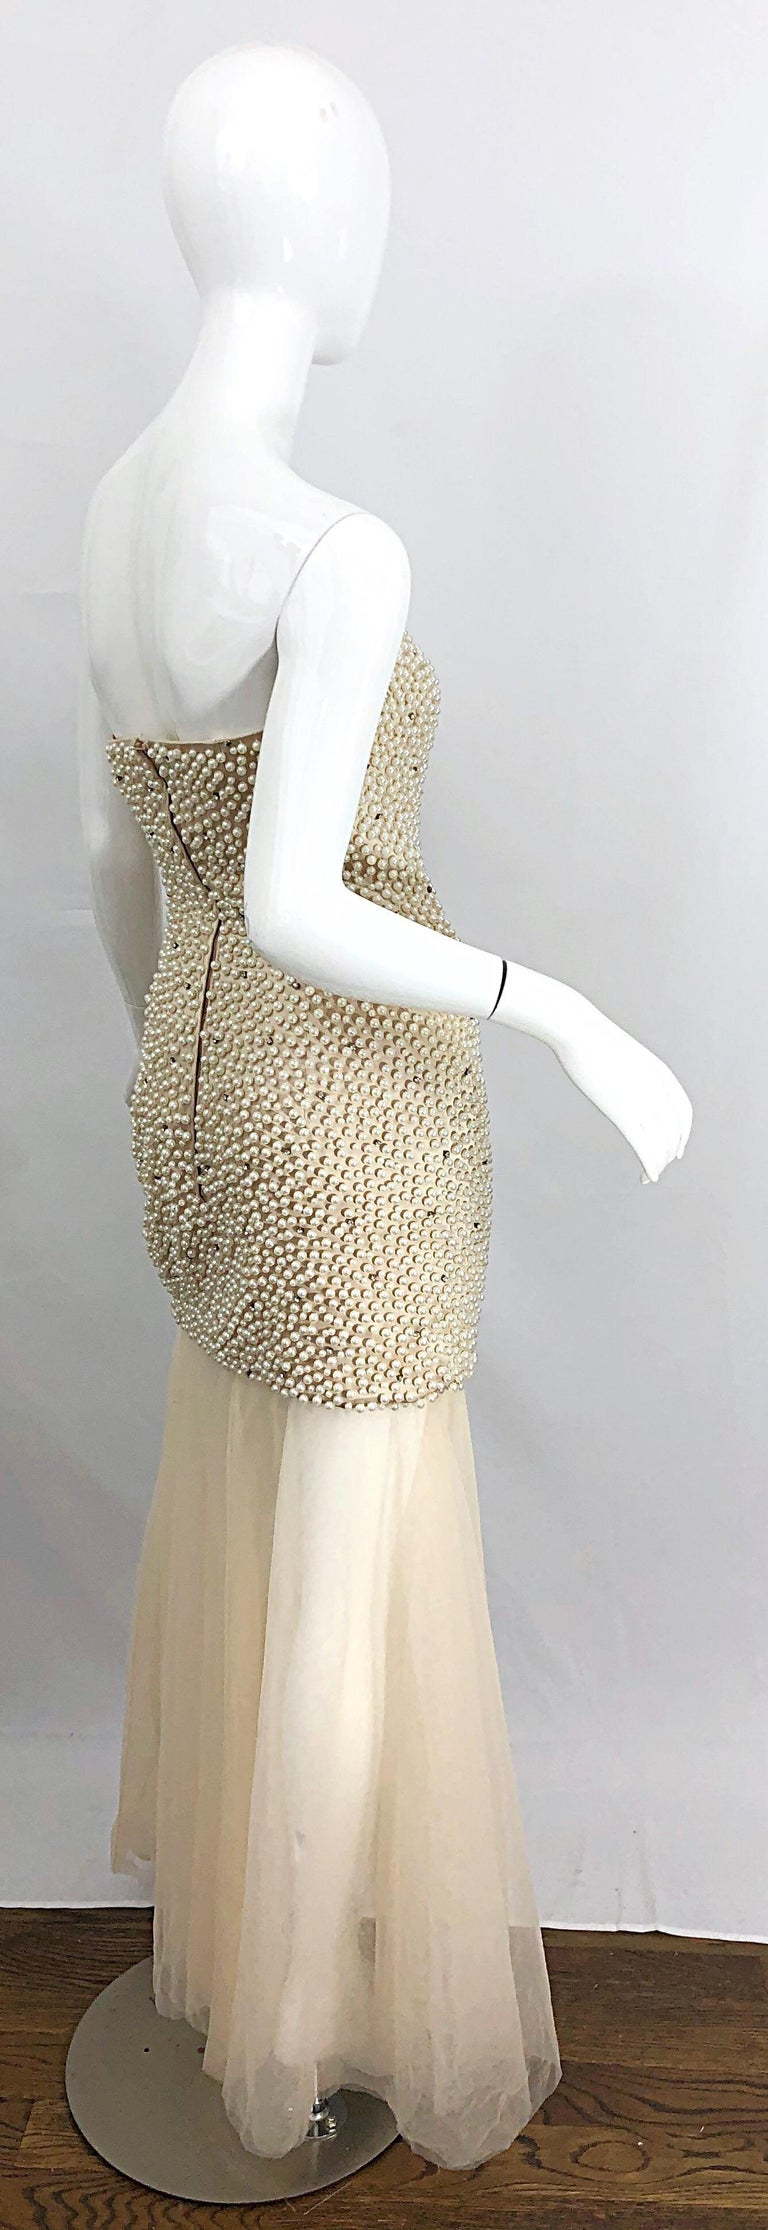 Phenomenal 1990s Couture Pearl + Rhinestone Encrusted Strapless Beige 90s Gown For Sale 8